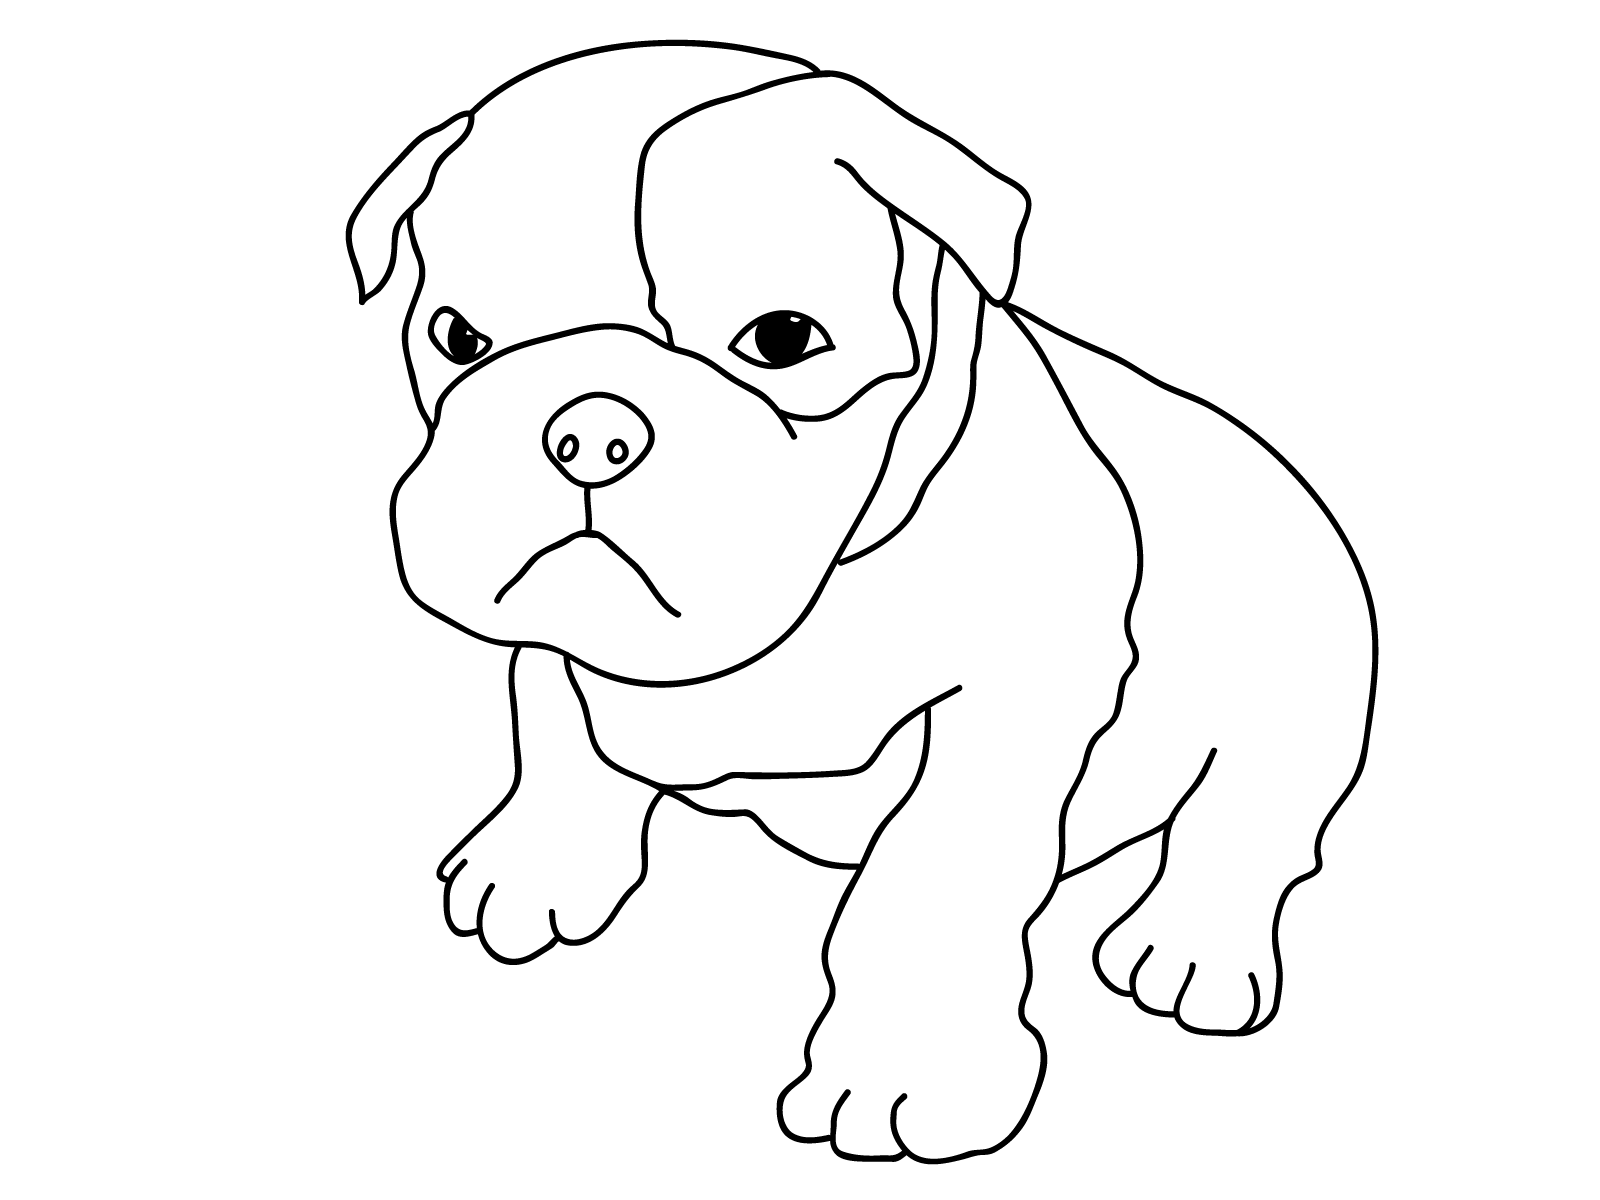 cute dog pictures to colour top 25 free printable dog coloring pages online pictures cute colour dog to